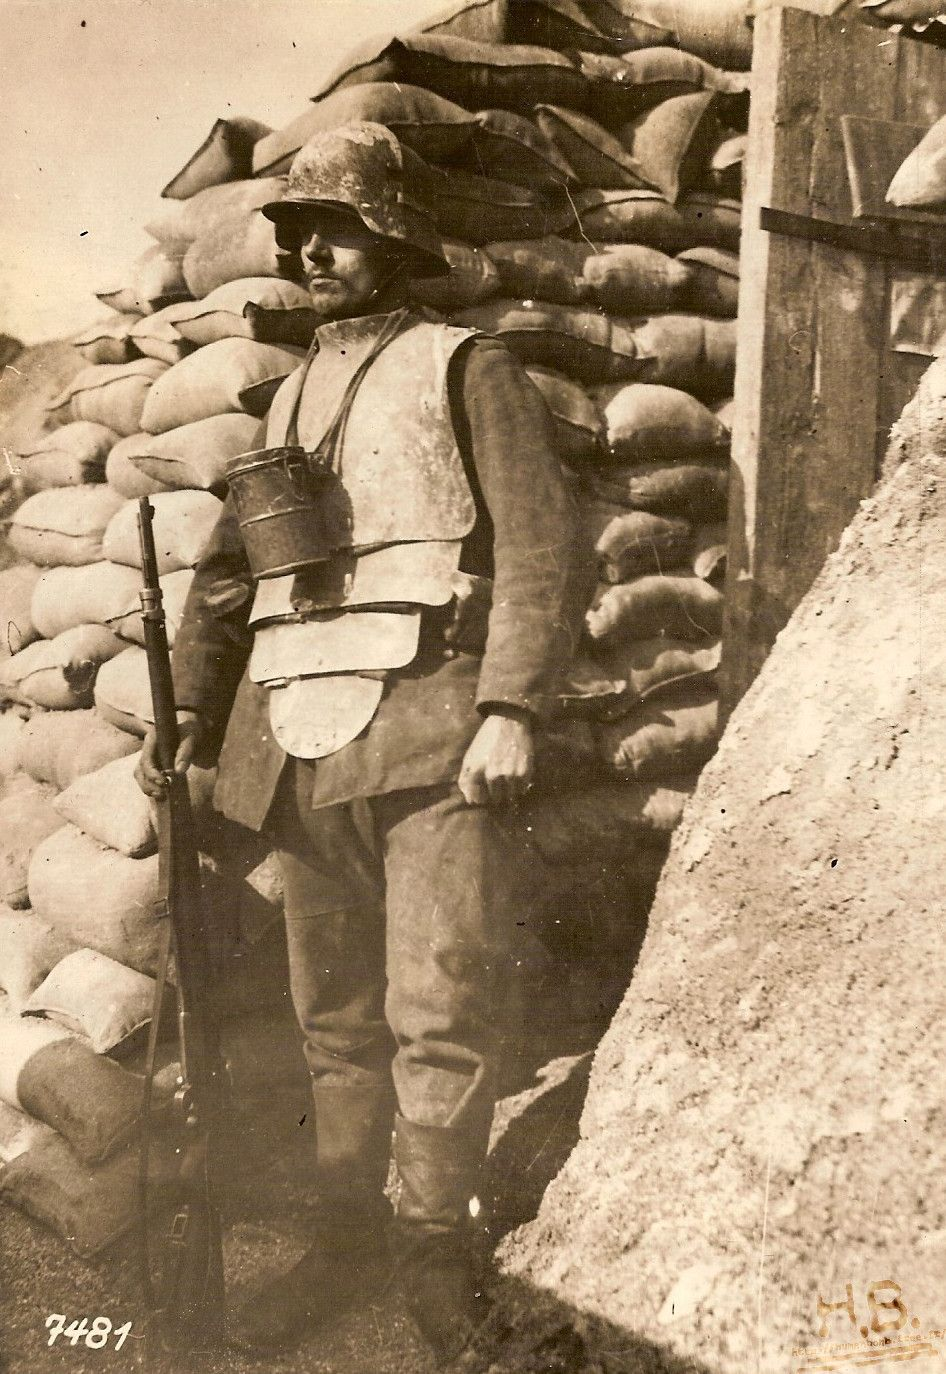 A German soldier wearing infanterie-panzer armor on the Western Front, 1918. Notice the added front plate on the helmet designed to protect from snipers. The canister hung around his neck contains his gas mask. [946x1374]